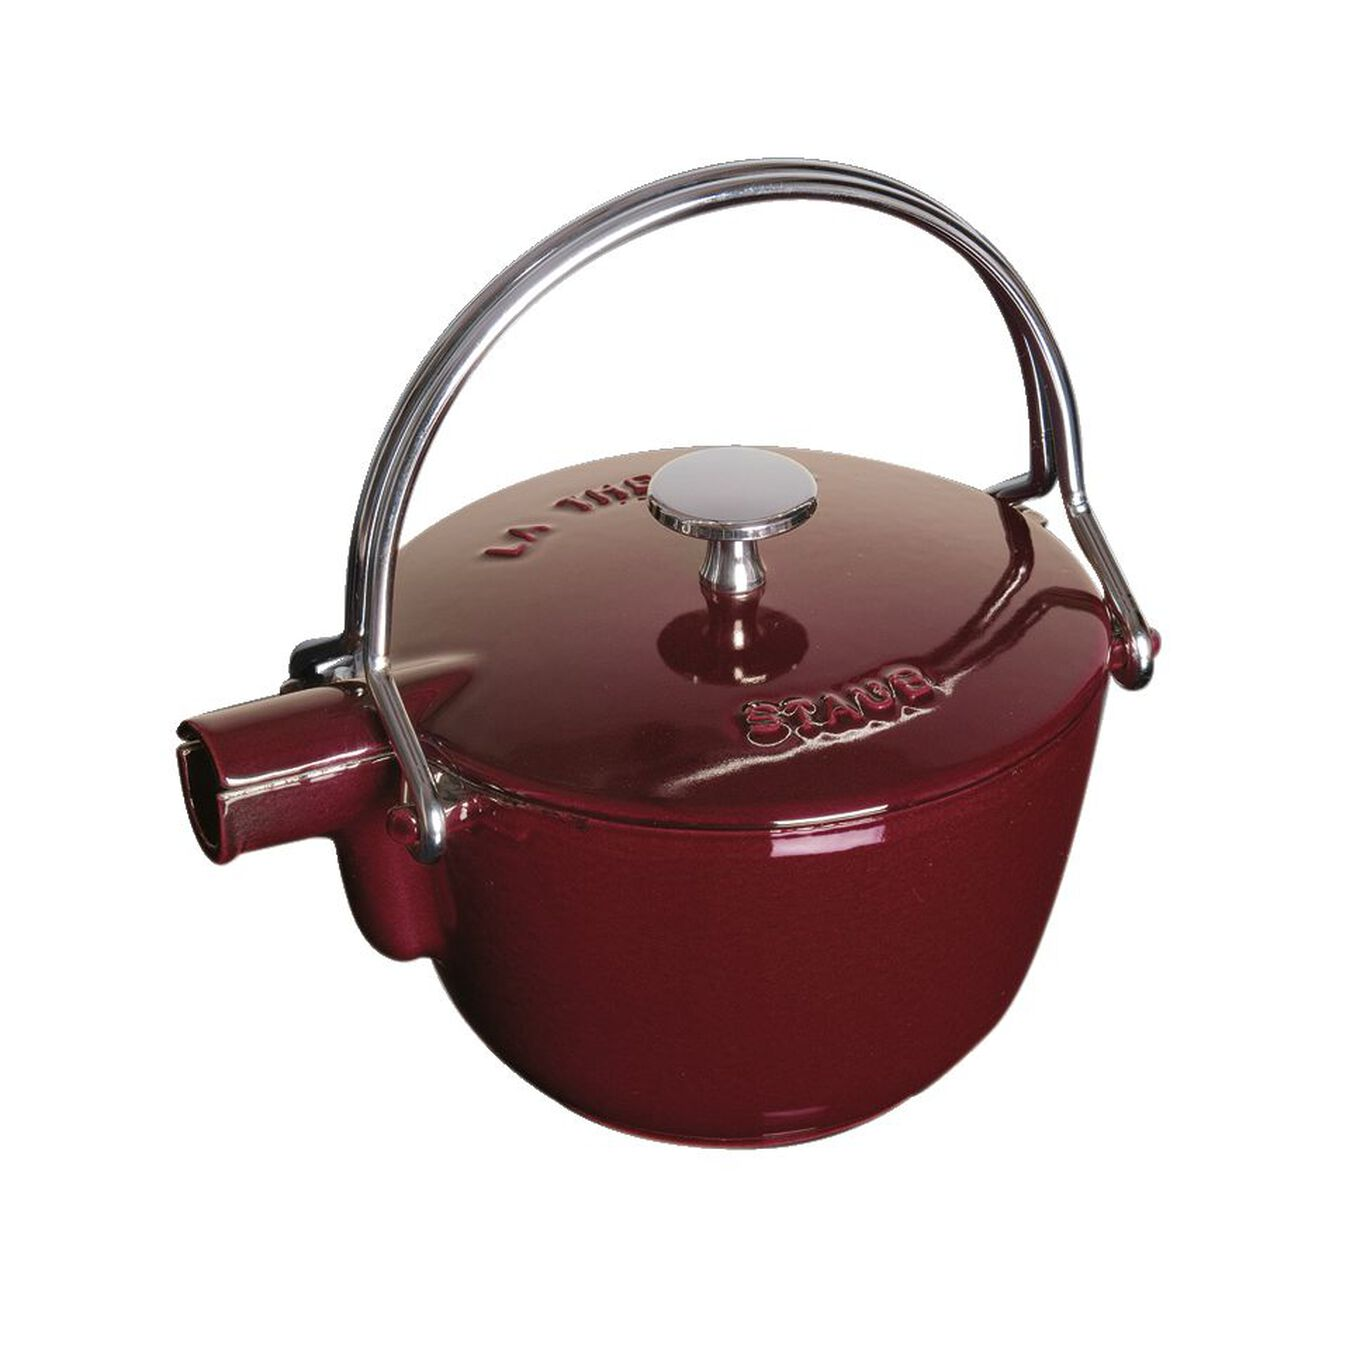 1-qt Round Tea Kettle - Grenadine,,large 5